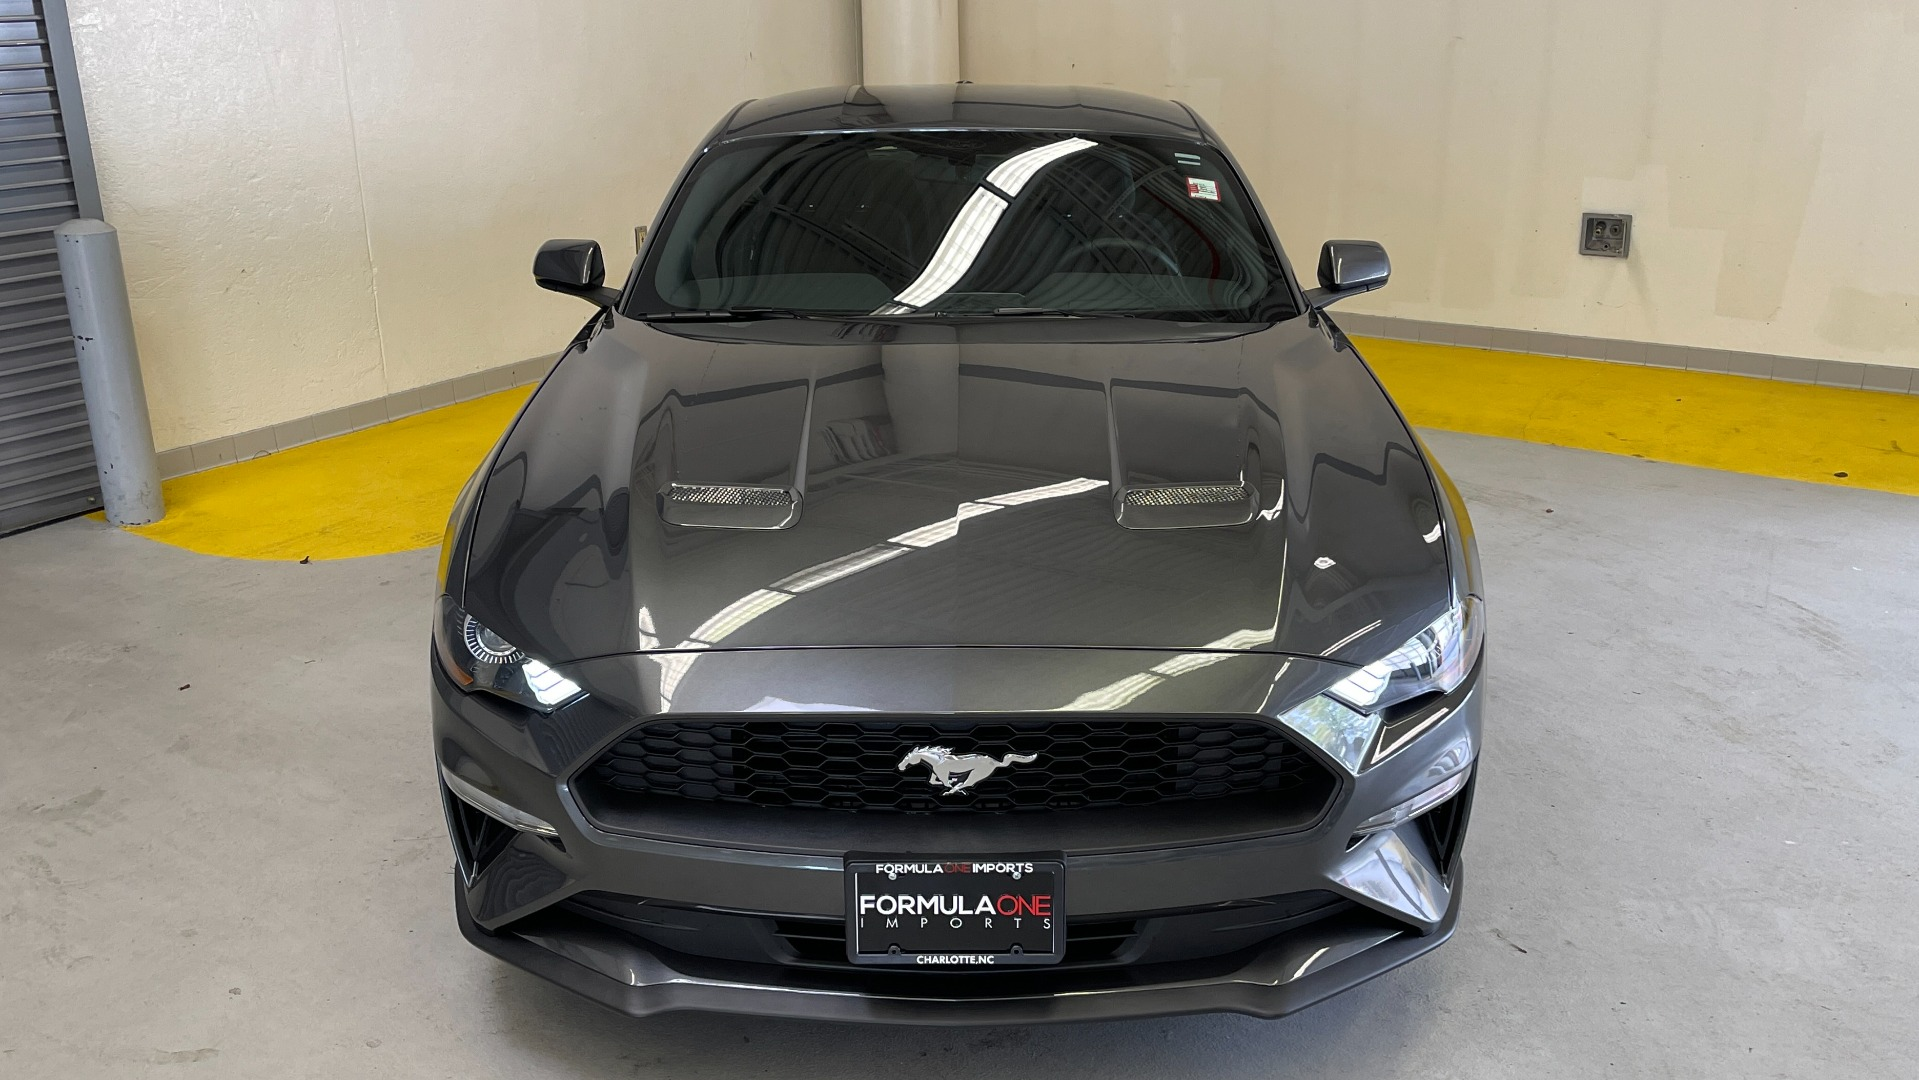 Used 2019 Ford MUSTANG ECOBOOST 2.3L / 10-SPD AUTO / SYNC3 8INCH SCREEN / TRACK APPS / REARVIEW for sale $31,795 at Formula Imports in Charlotte NC 28227 14